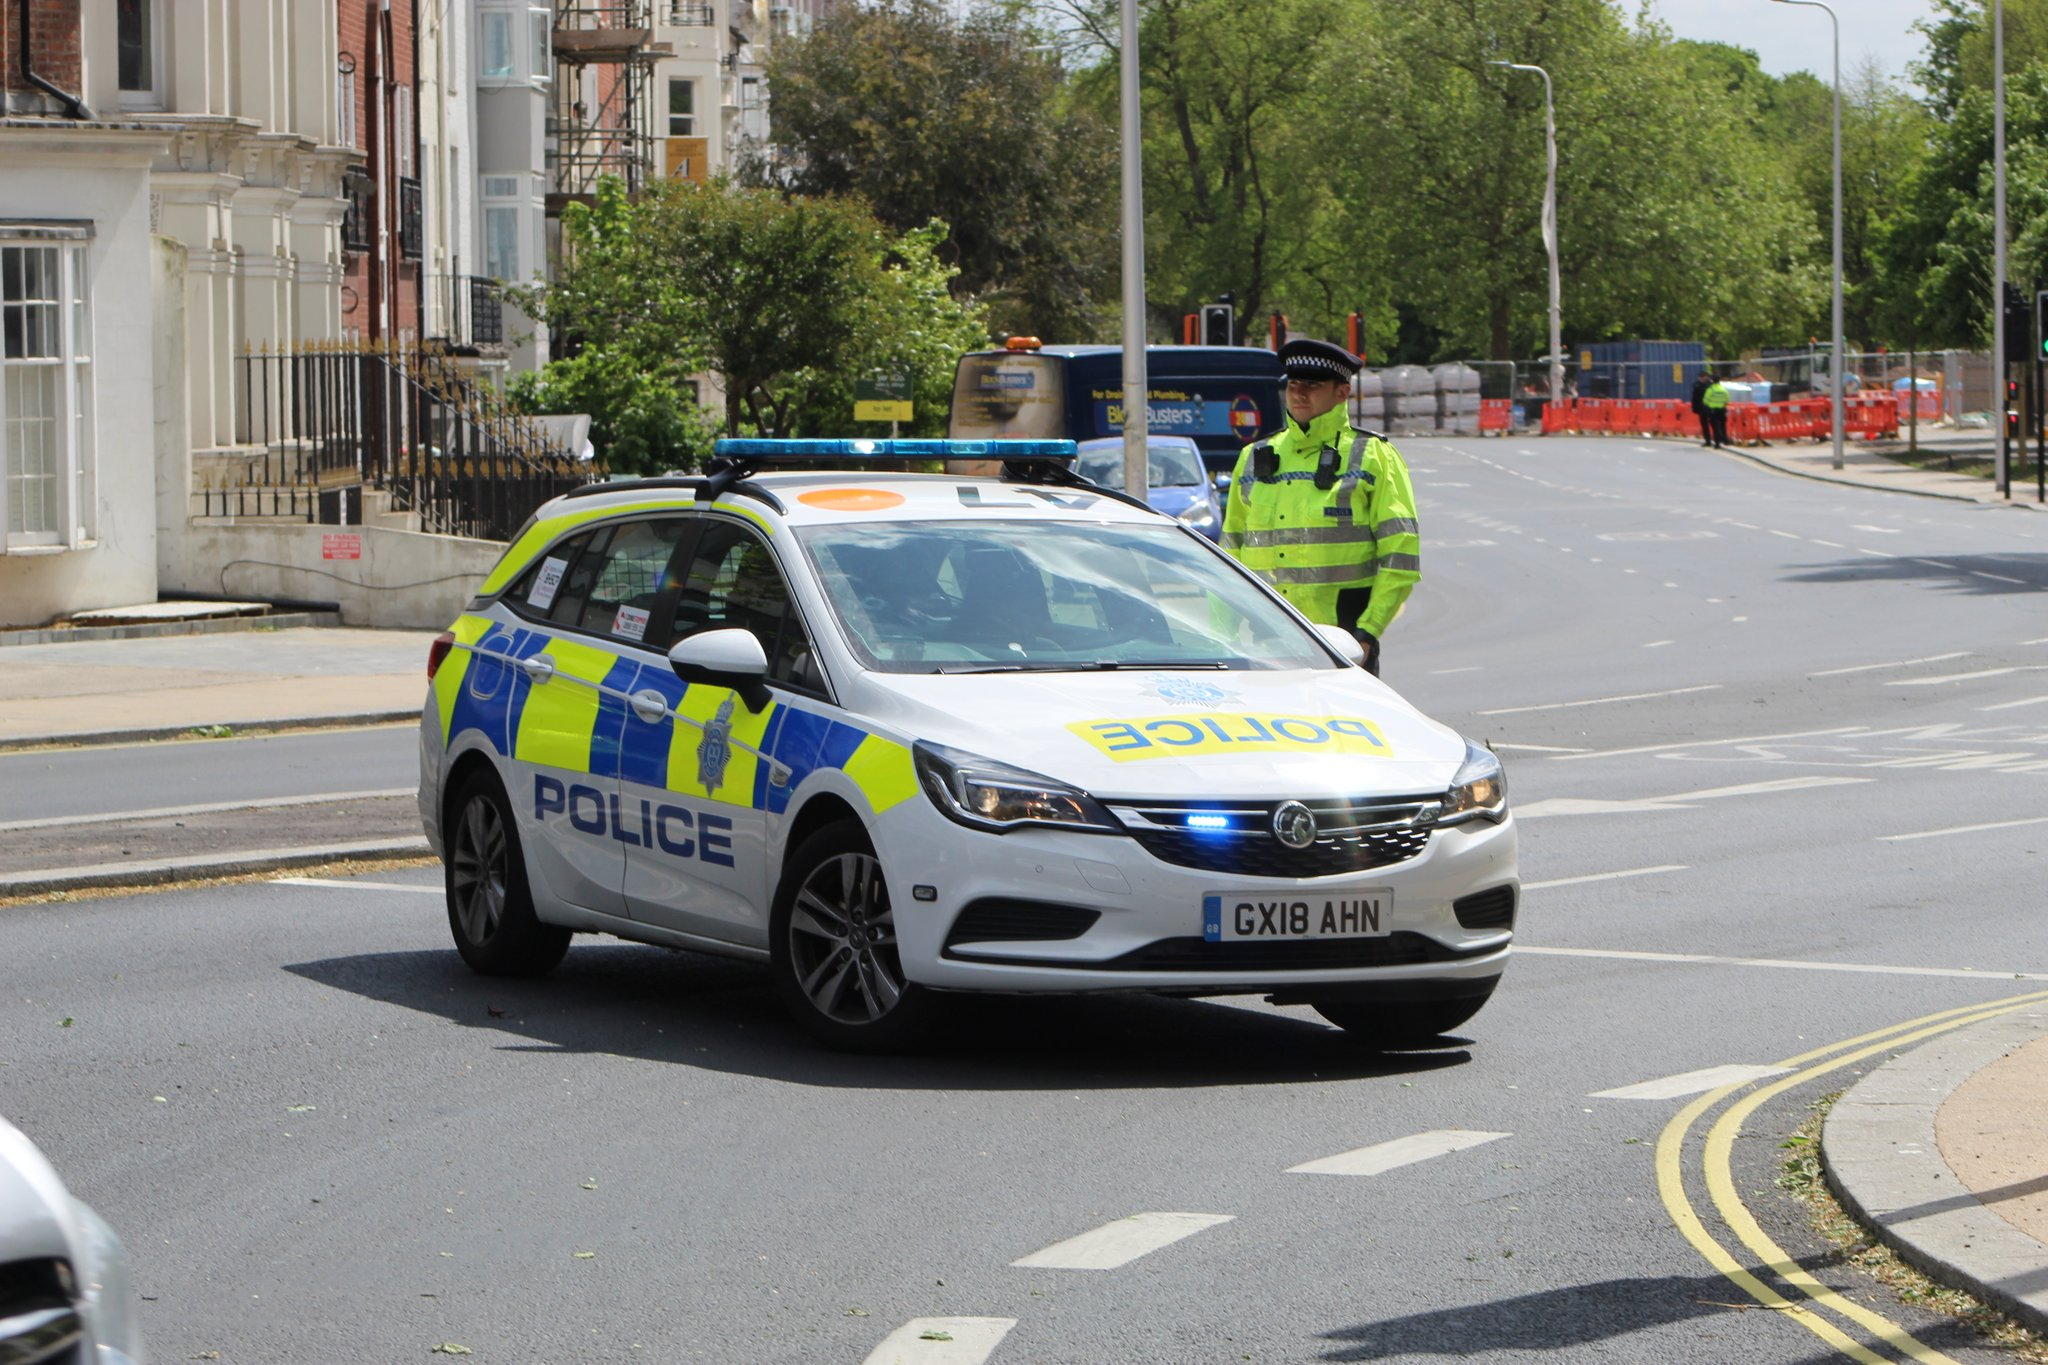 Controlled explosion carried out in Brighton this afternoon